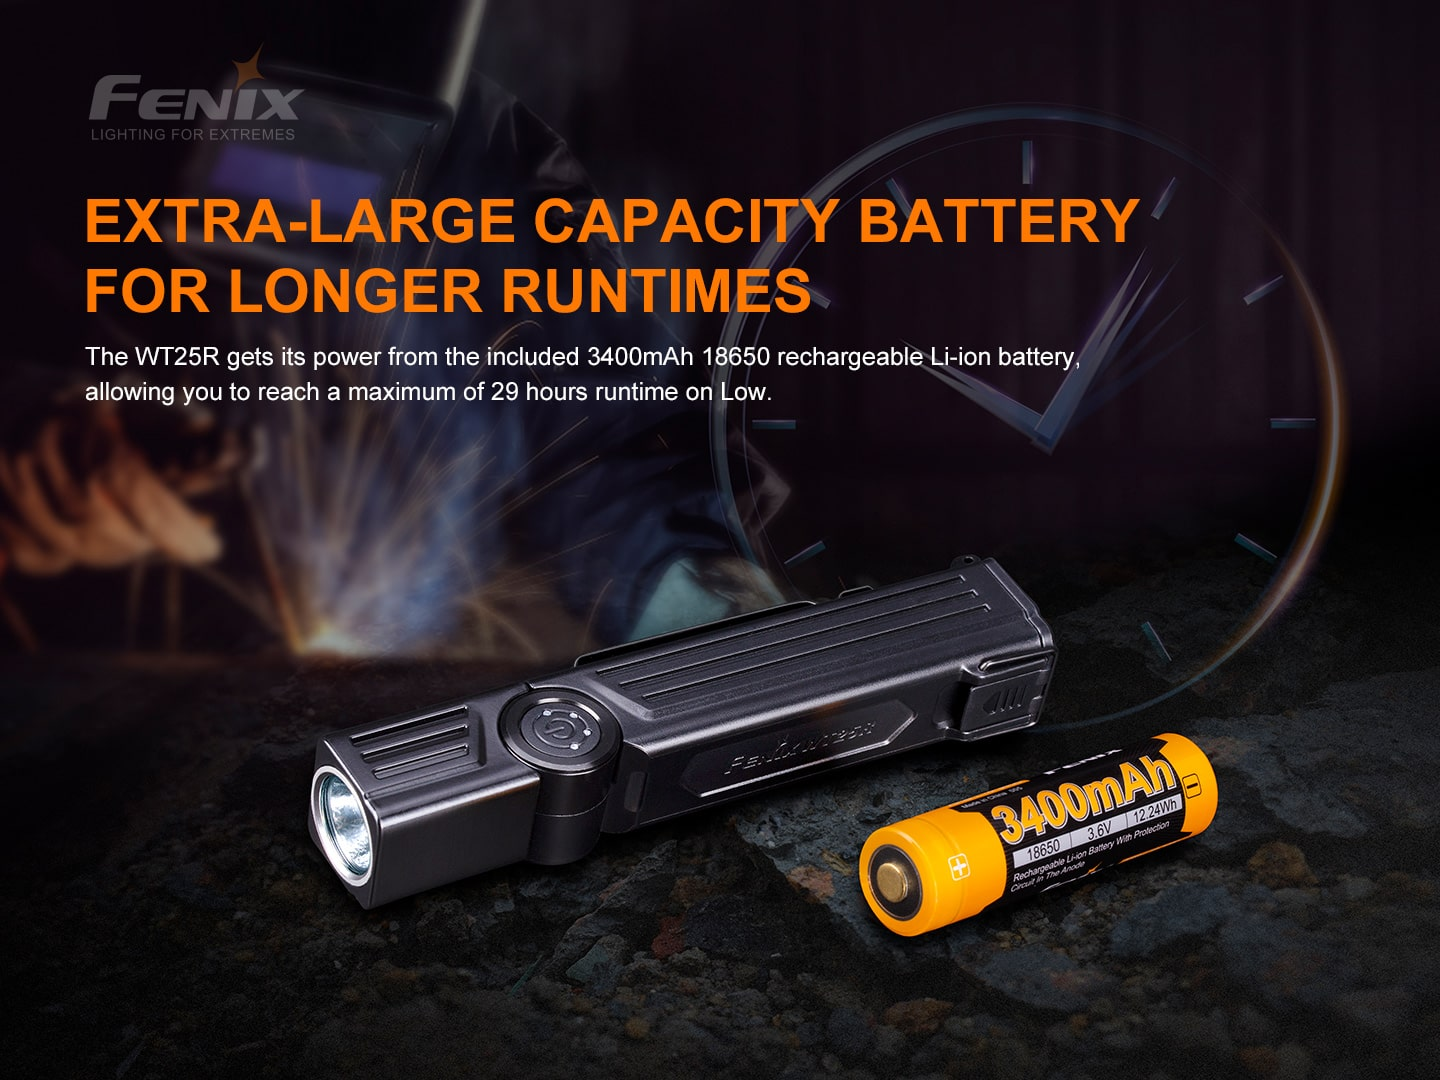 Fenix WT25R LED Torch Light in India, 1000 Lumens Rechargeable work all purpose flashlight with adjustable head and magnetic base, Best Torch in India